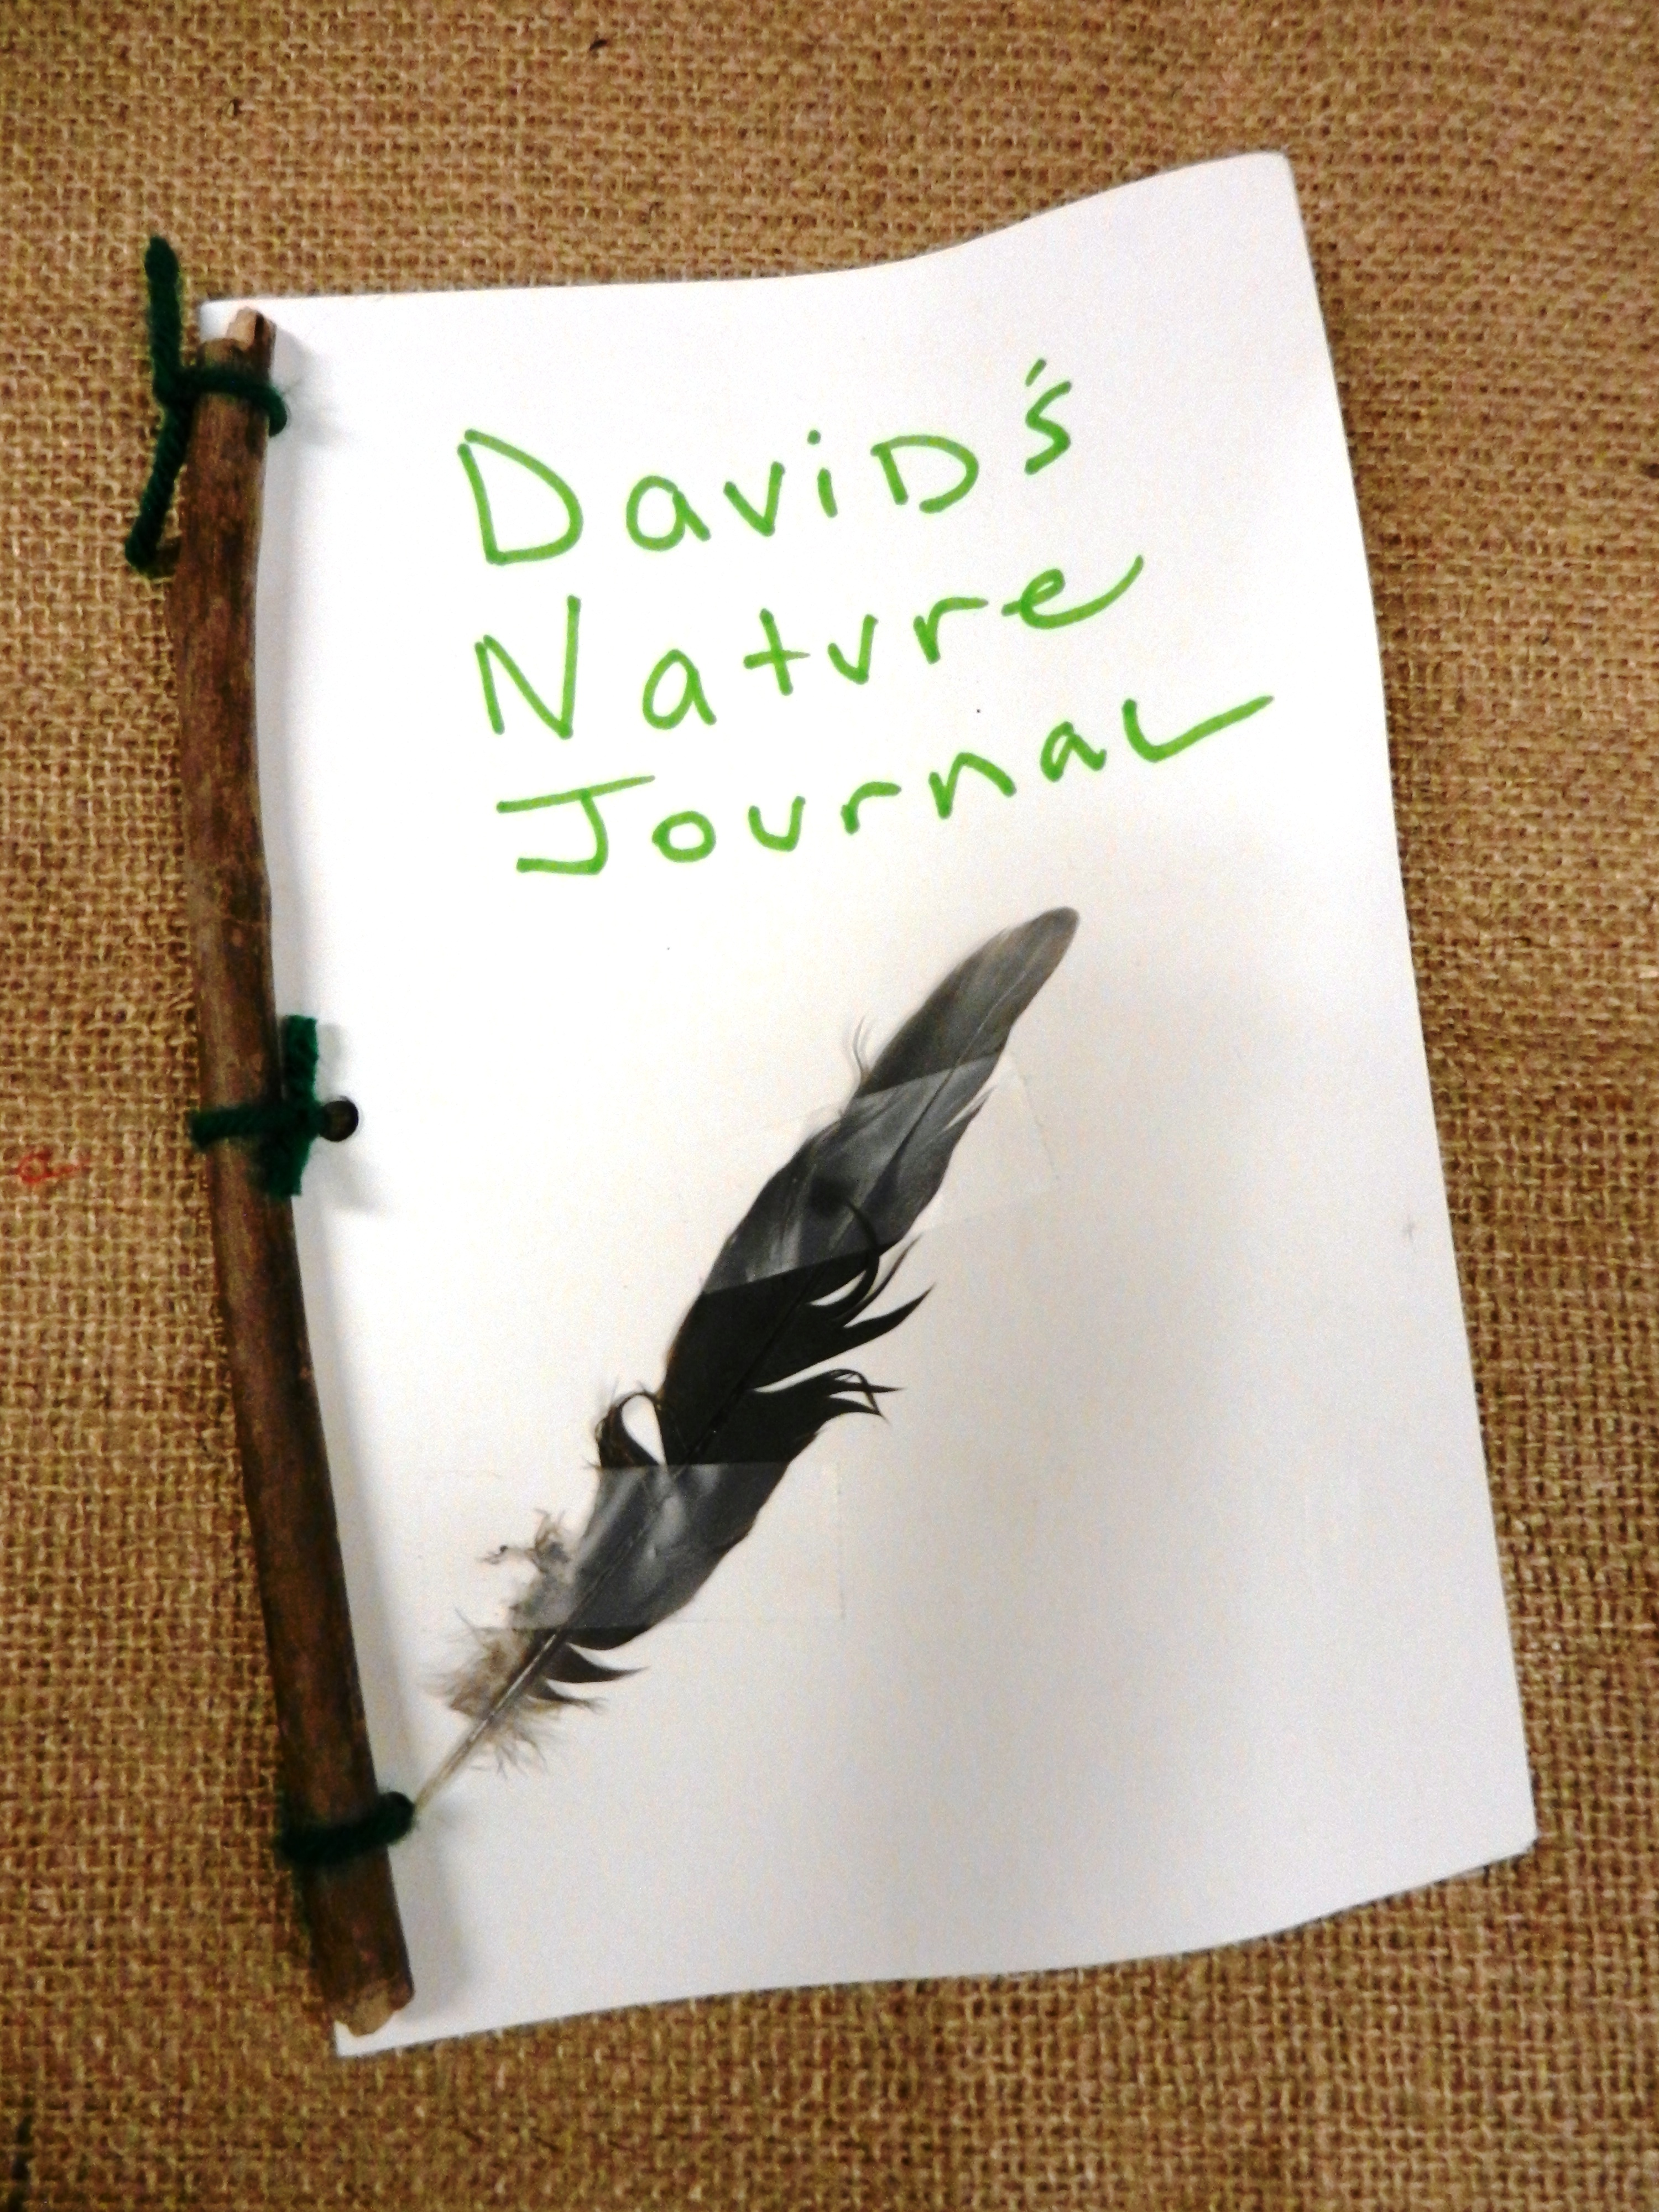 nature journal crafts autumn natural action pages seasonal discovery leaves paper cover into using natureintoaction leaf